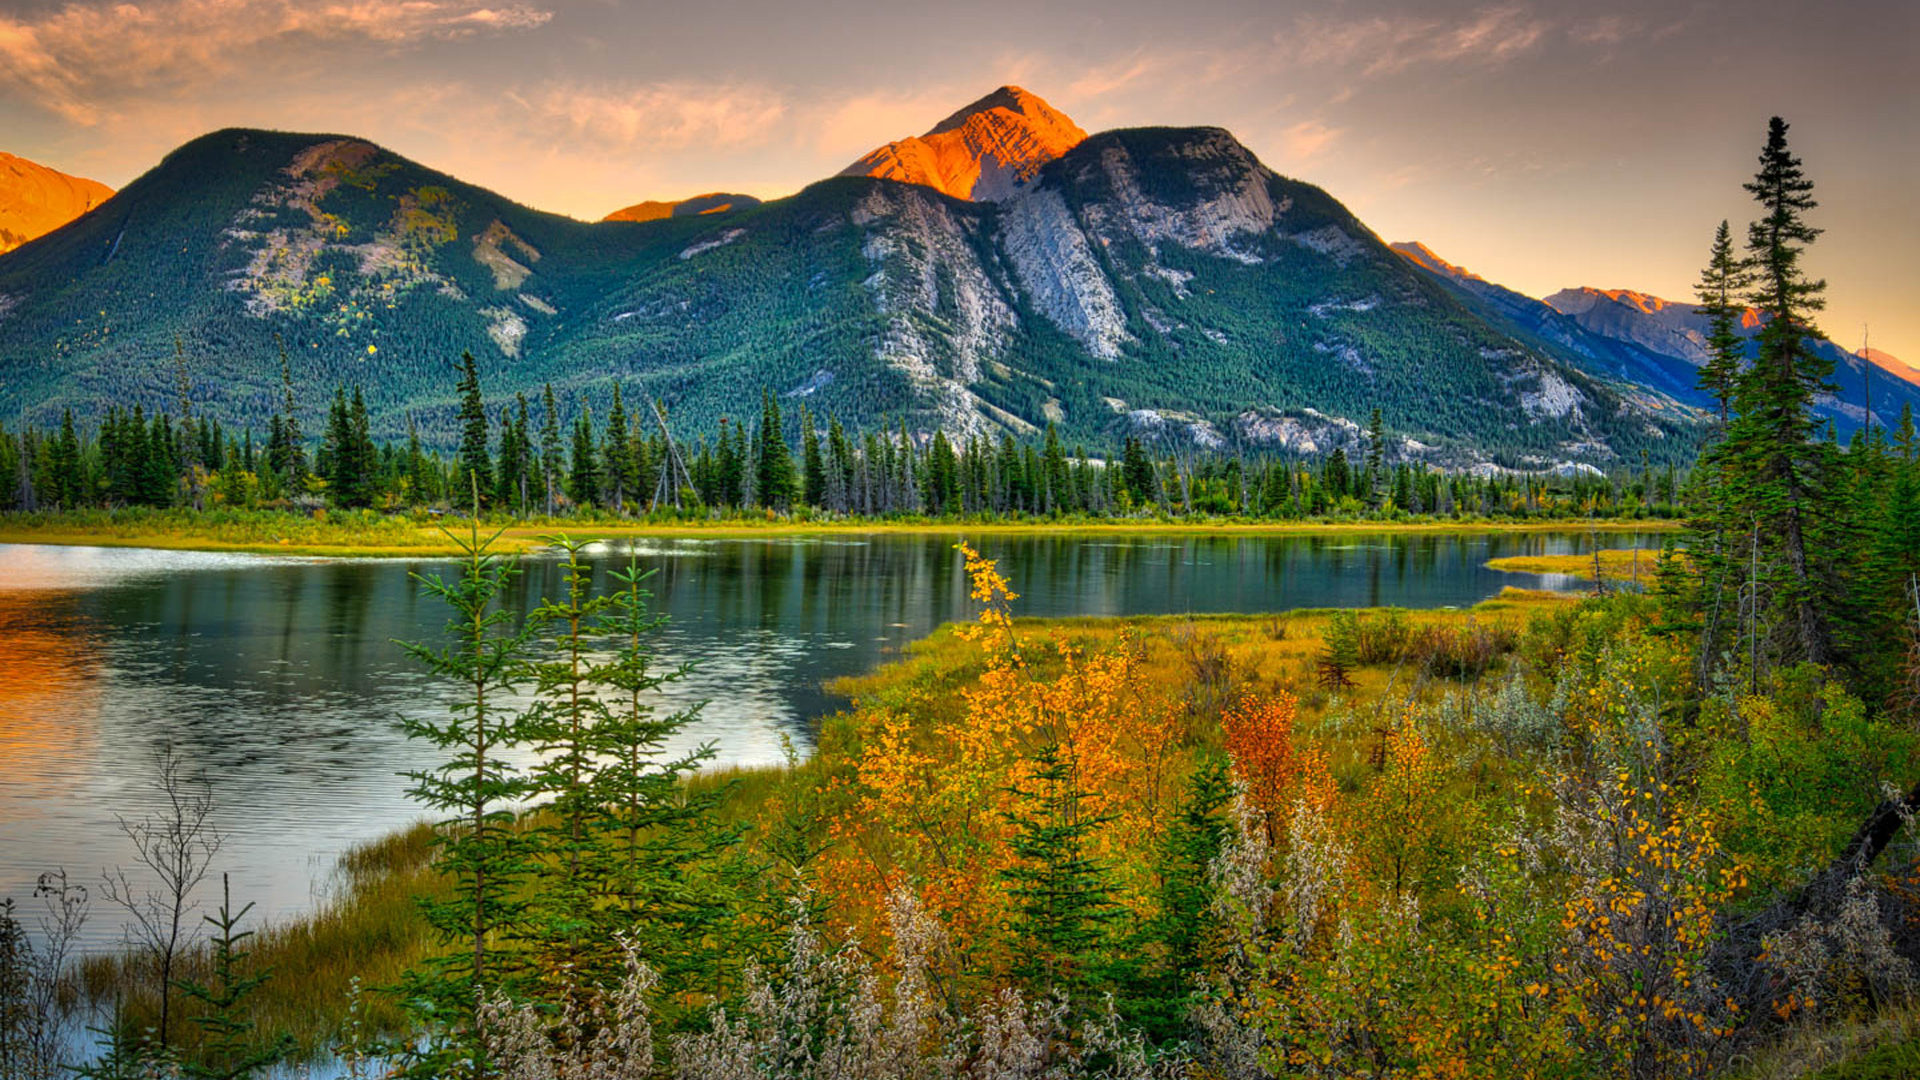 Hd Wallpapers Android Lock Screen Natural Beauties Canada Landscape Rocky Mountains Pine